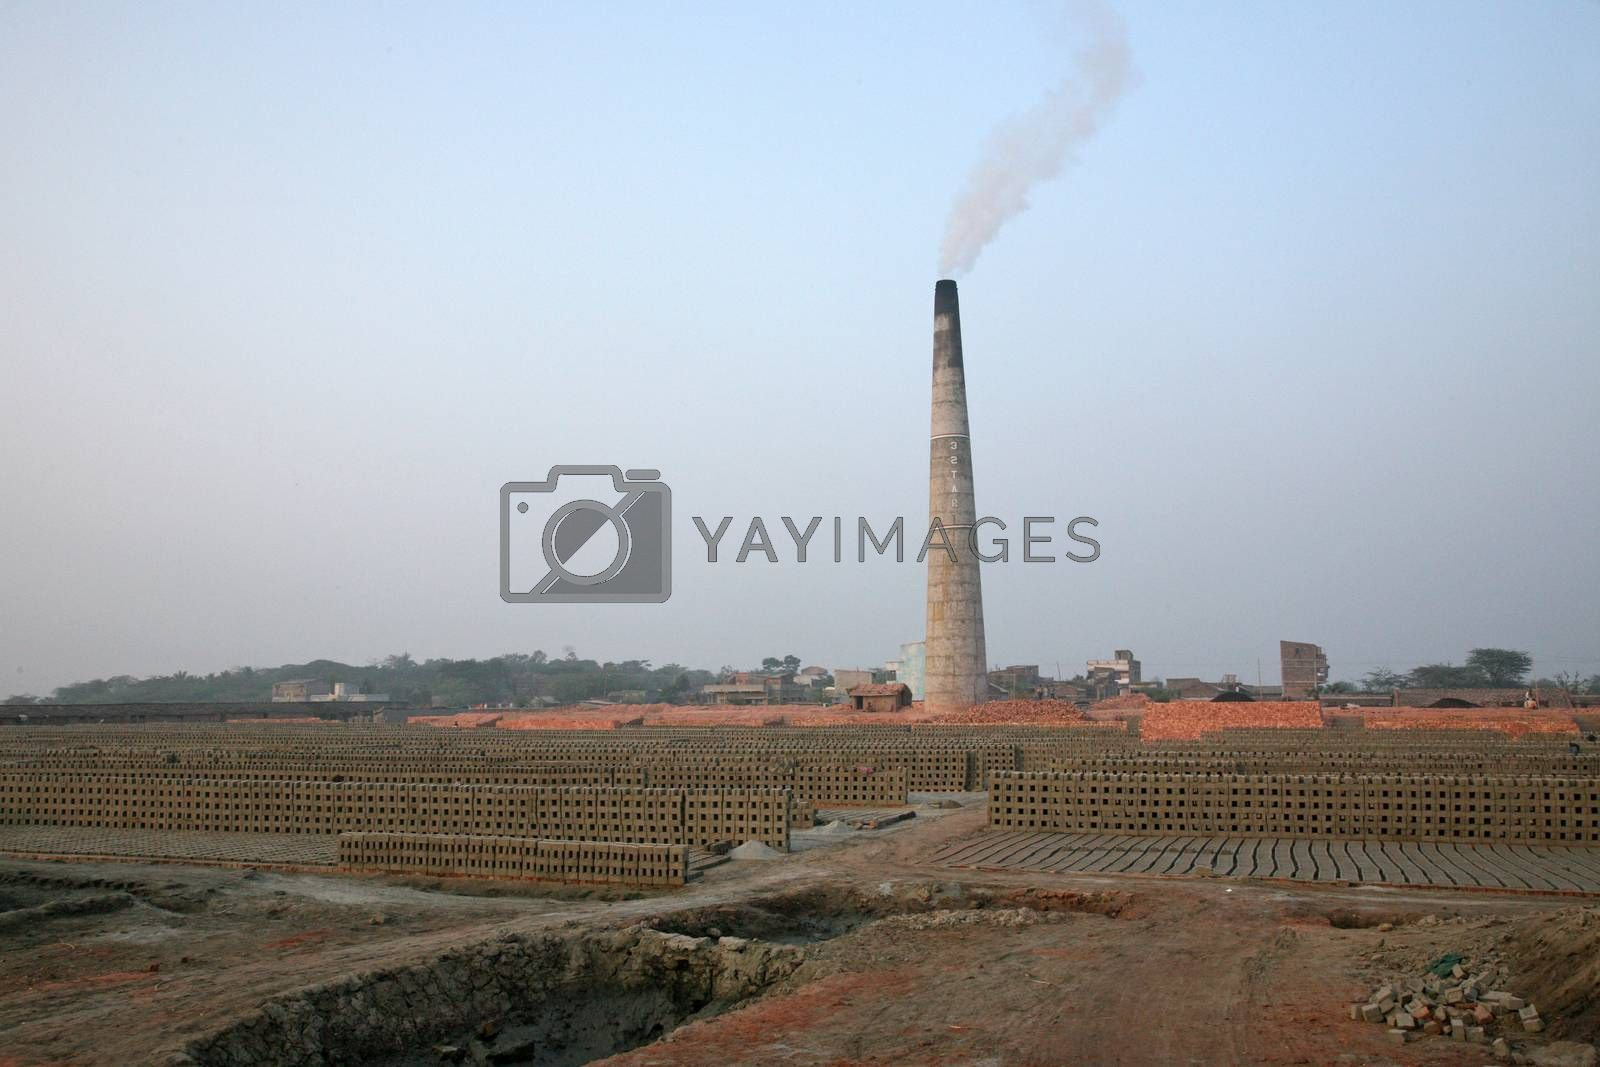 A Brick field is a large landed area, used for manufacturing bricks from mud, soil, clay and sand. Tools and machines for making bricks are very rudimentary, January 14, 2009 in Sarberia, West Bengal, India.